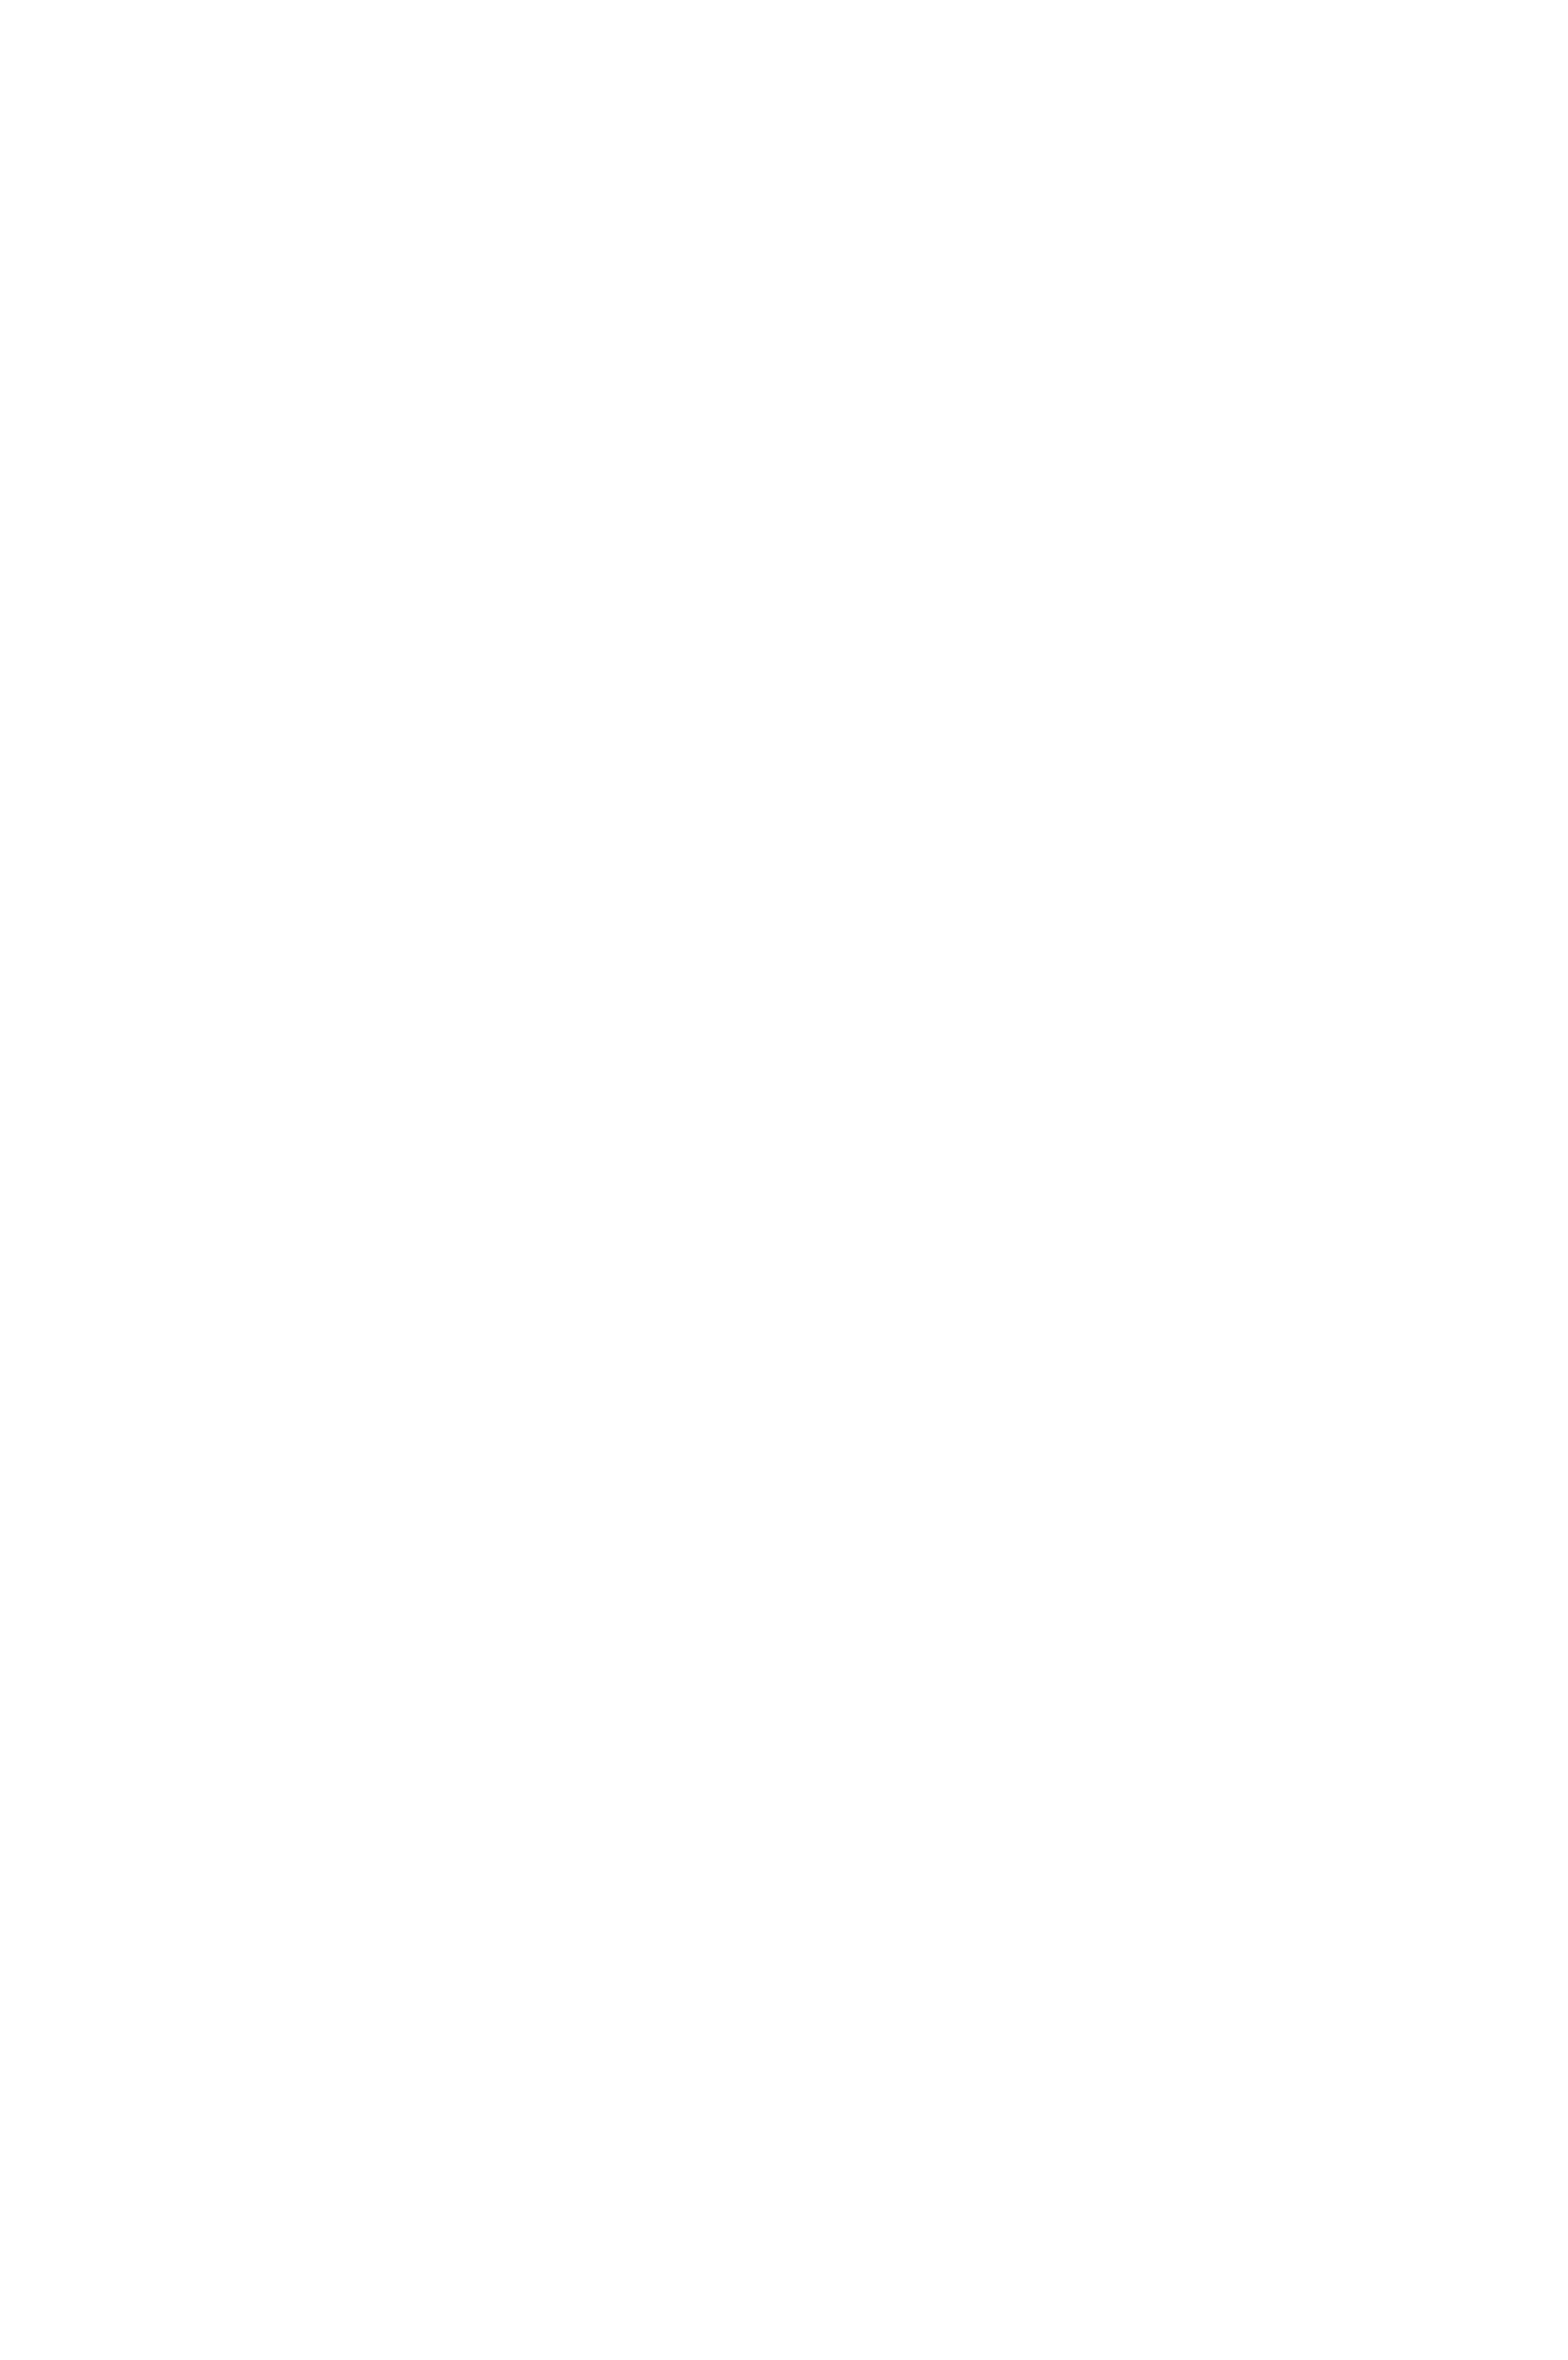 The grassland of North America by James Claude Malin